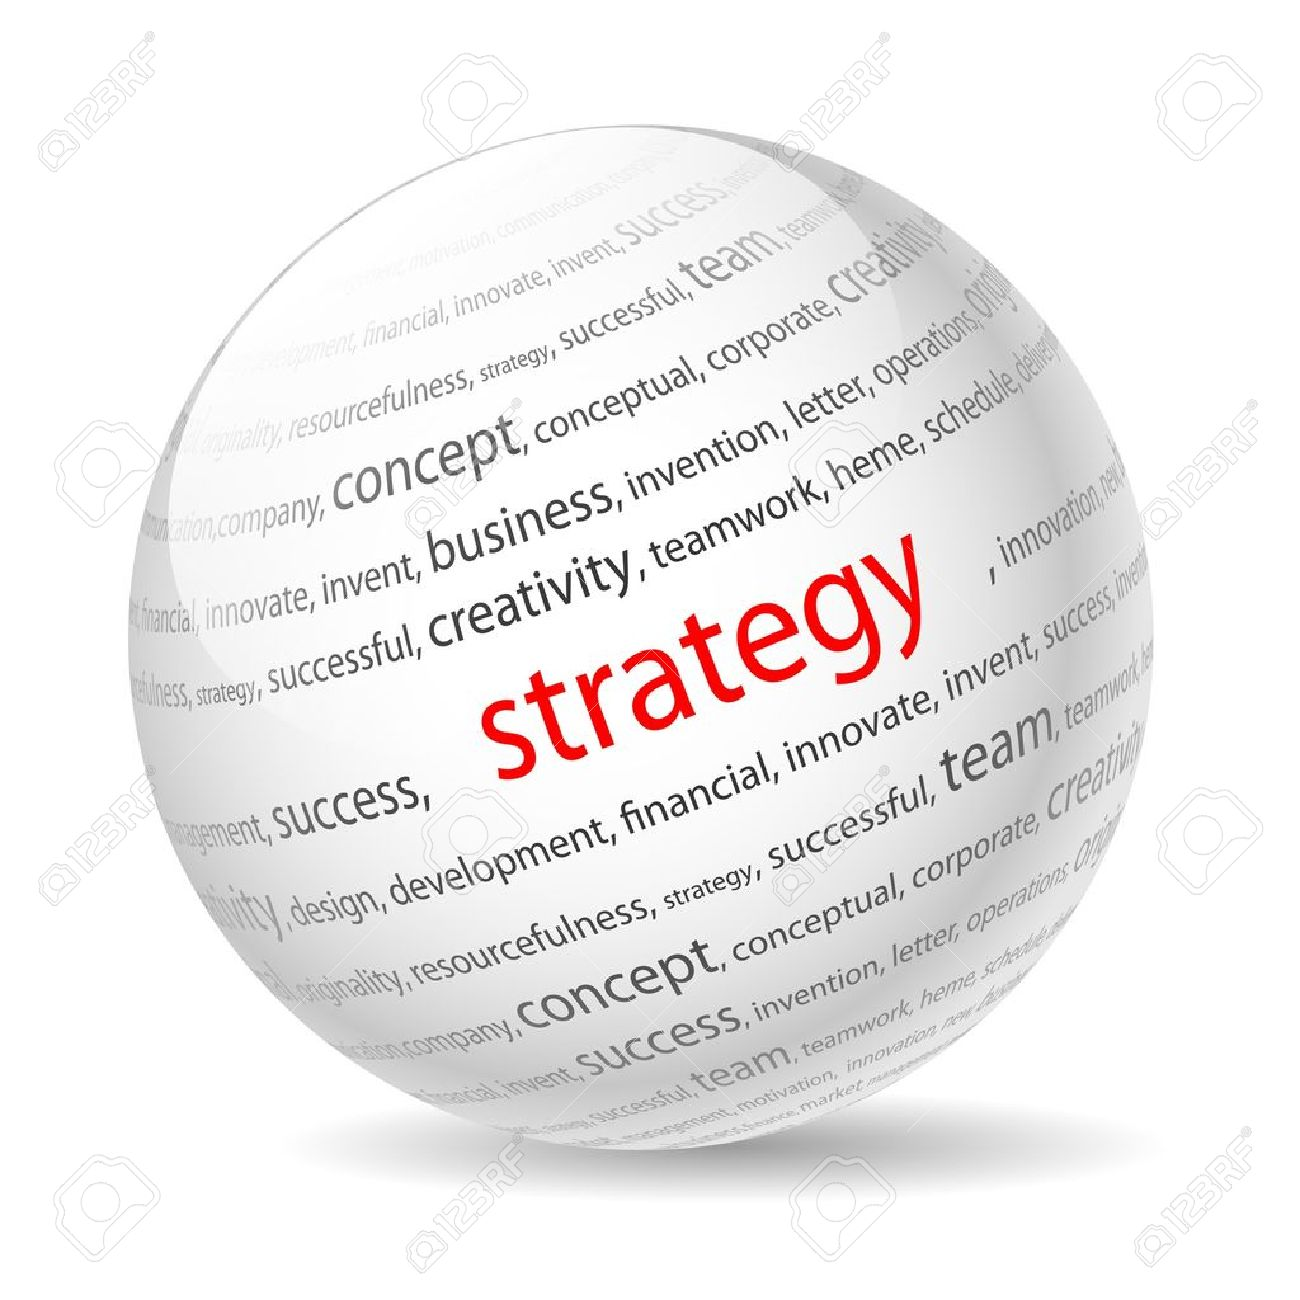 the art of strategy The art of war by sun tzu chapter 3: attack by stratagem, the most important and most famous military treatise in asia for the last two thousand years.